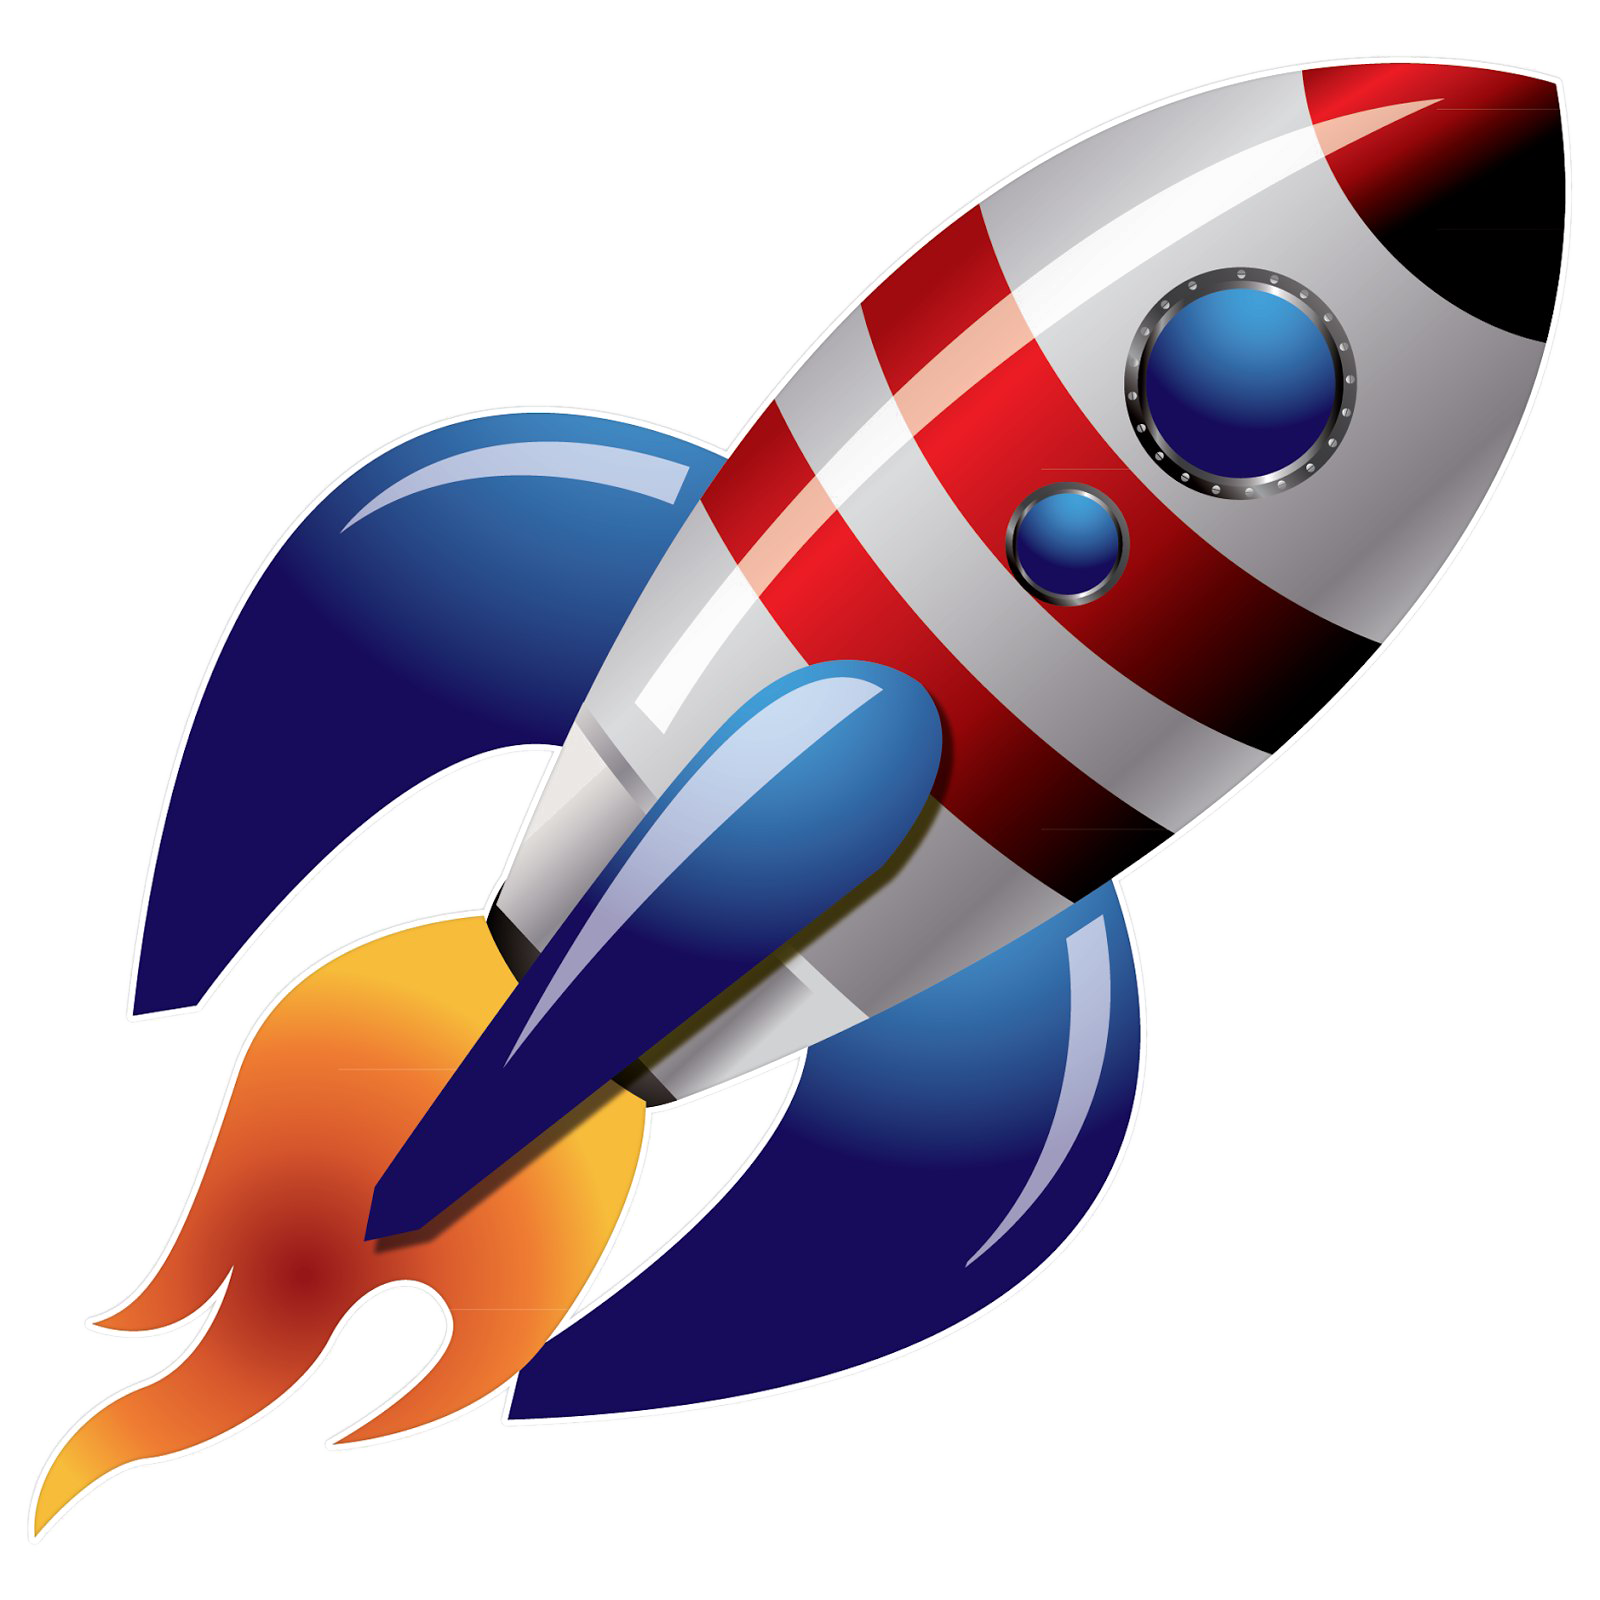 Rocket png. Space image transparent background